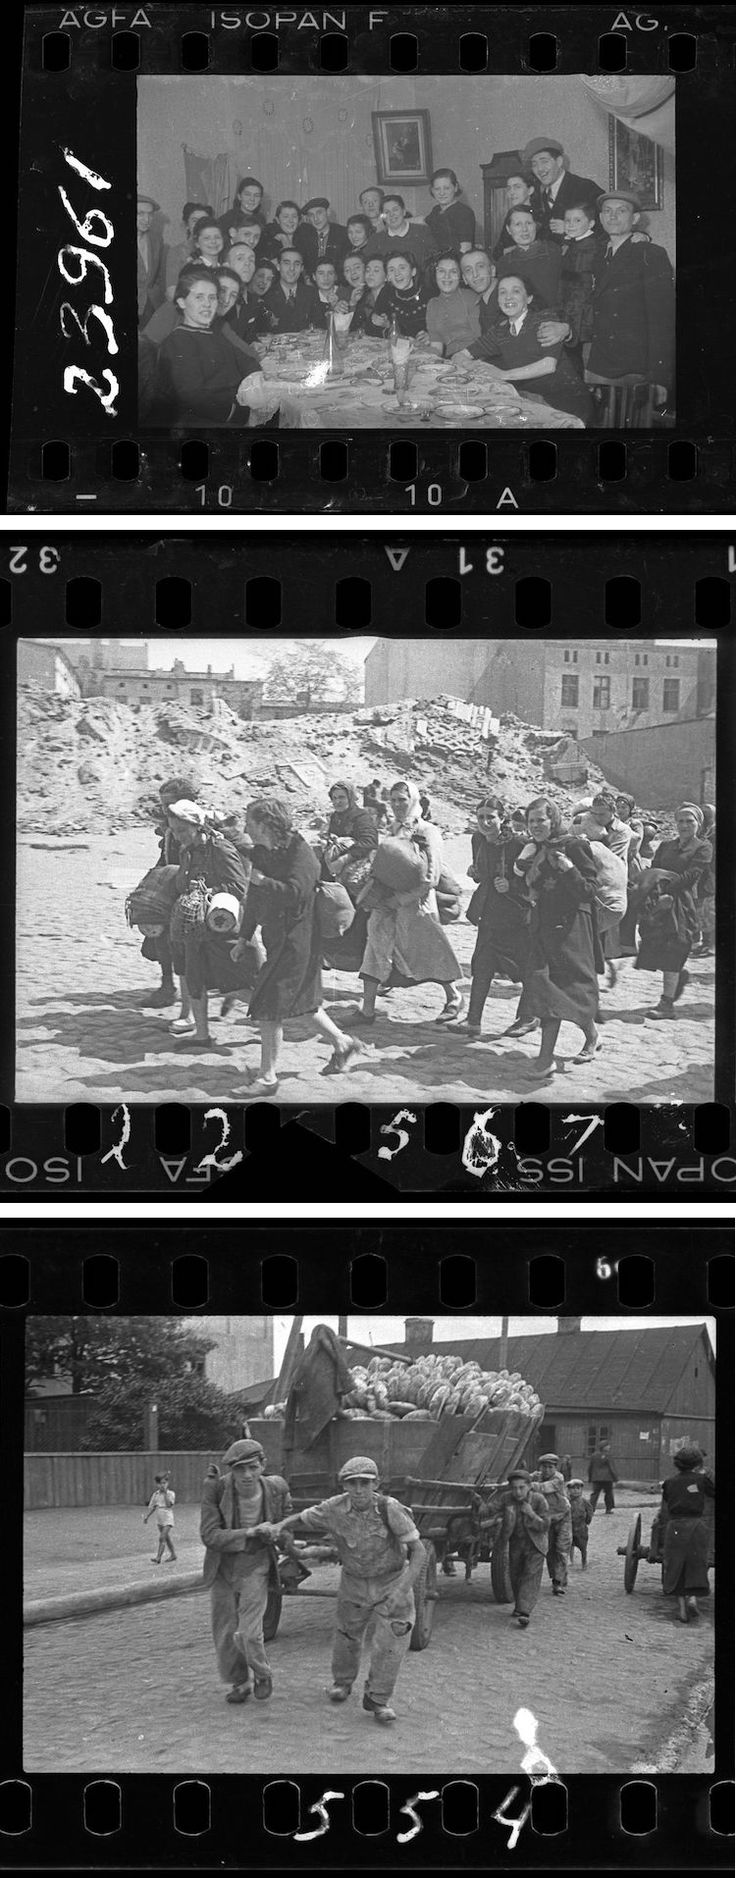 an overview of the lodz ghetto in europe during the world war two in poland When the nazis invaded poland in 1939, poland's two-million-plus jews found   some of the ghettos, such as warsaw and lodz, were built on two sides of  of  the war, the nazis tried to destroy evidence of the ghettos lodz was the last to be   history 311: the holocaust & world war ii  nazi escalation in europe & the.